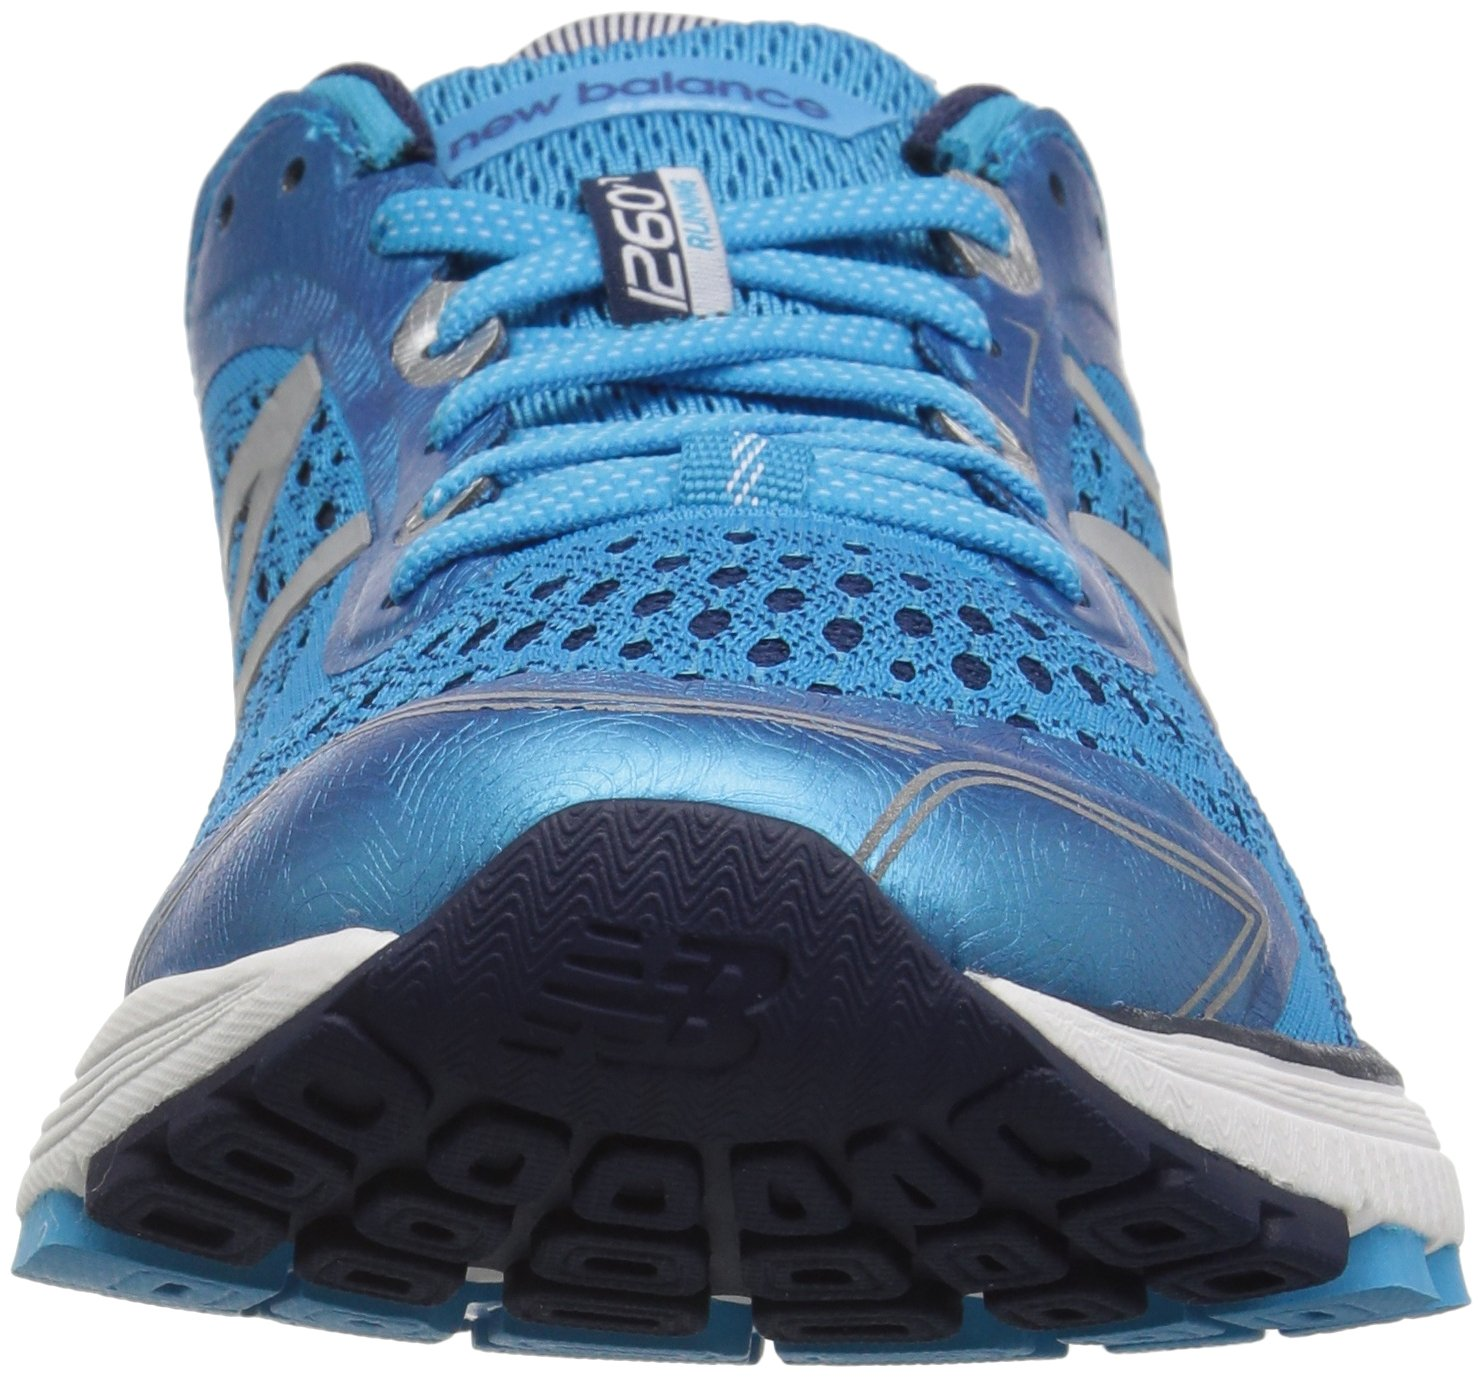 New Balance Women's 1260v7 Running Shoe B07527Z4ZZ 9 2A US|Bright Blue